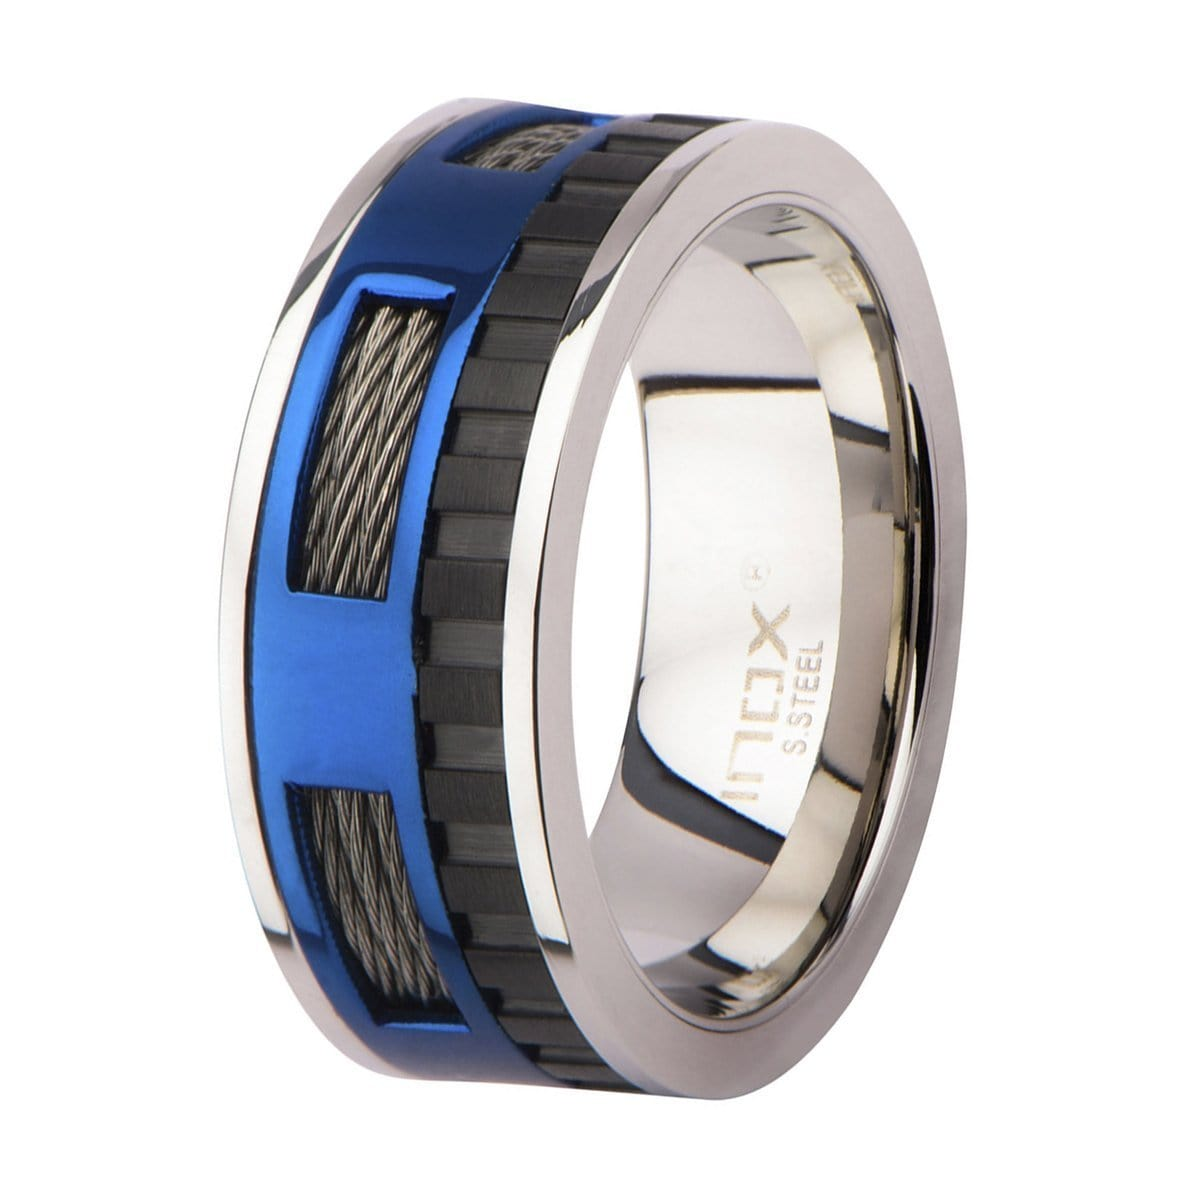 Blue, Black & Silver Stainless Steel Exposed Cable Wire Banded Window Ring Rings